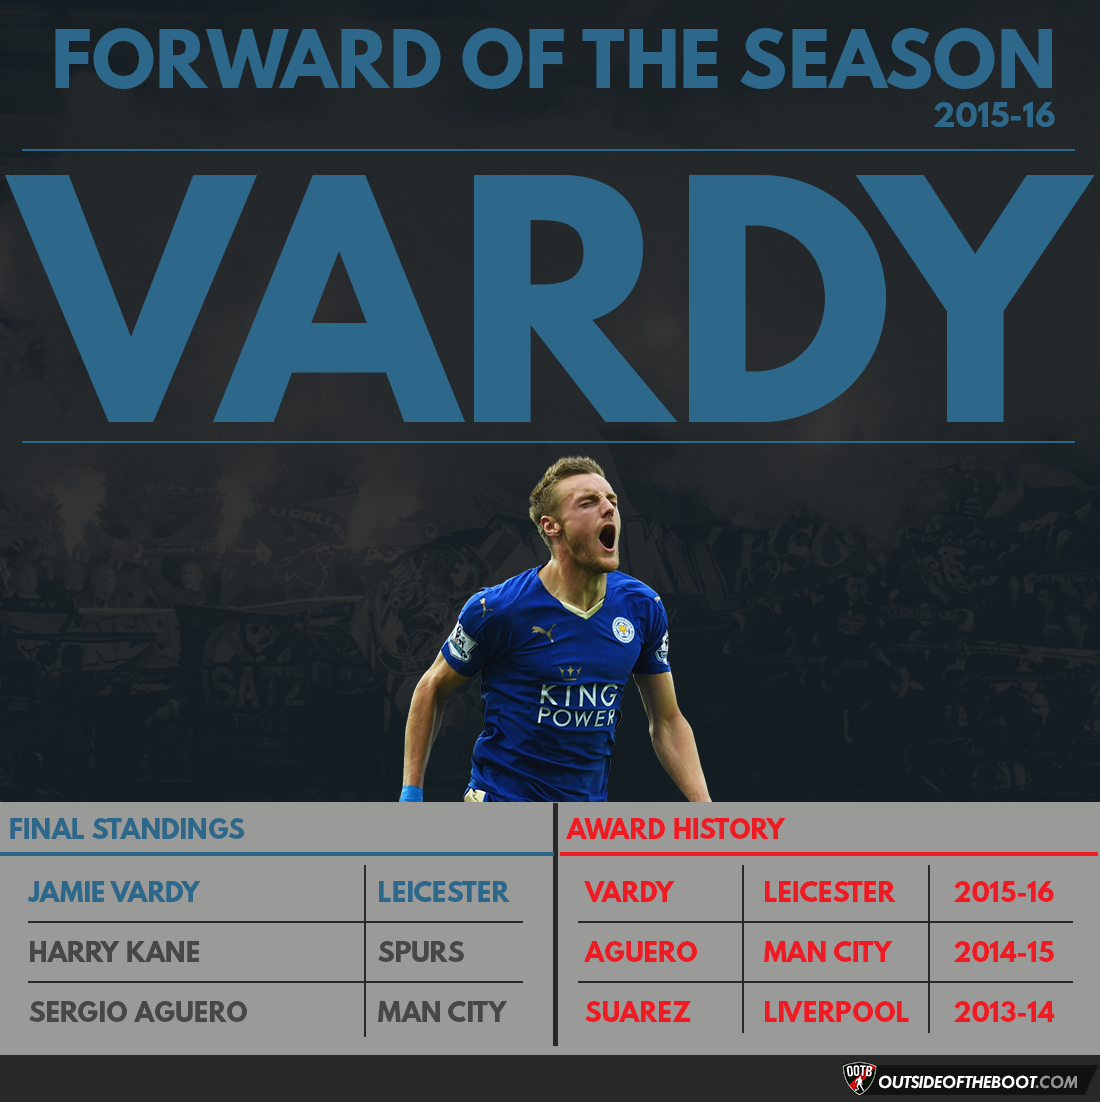 Premier League Forward of the Season 2015-16